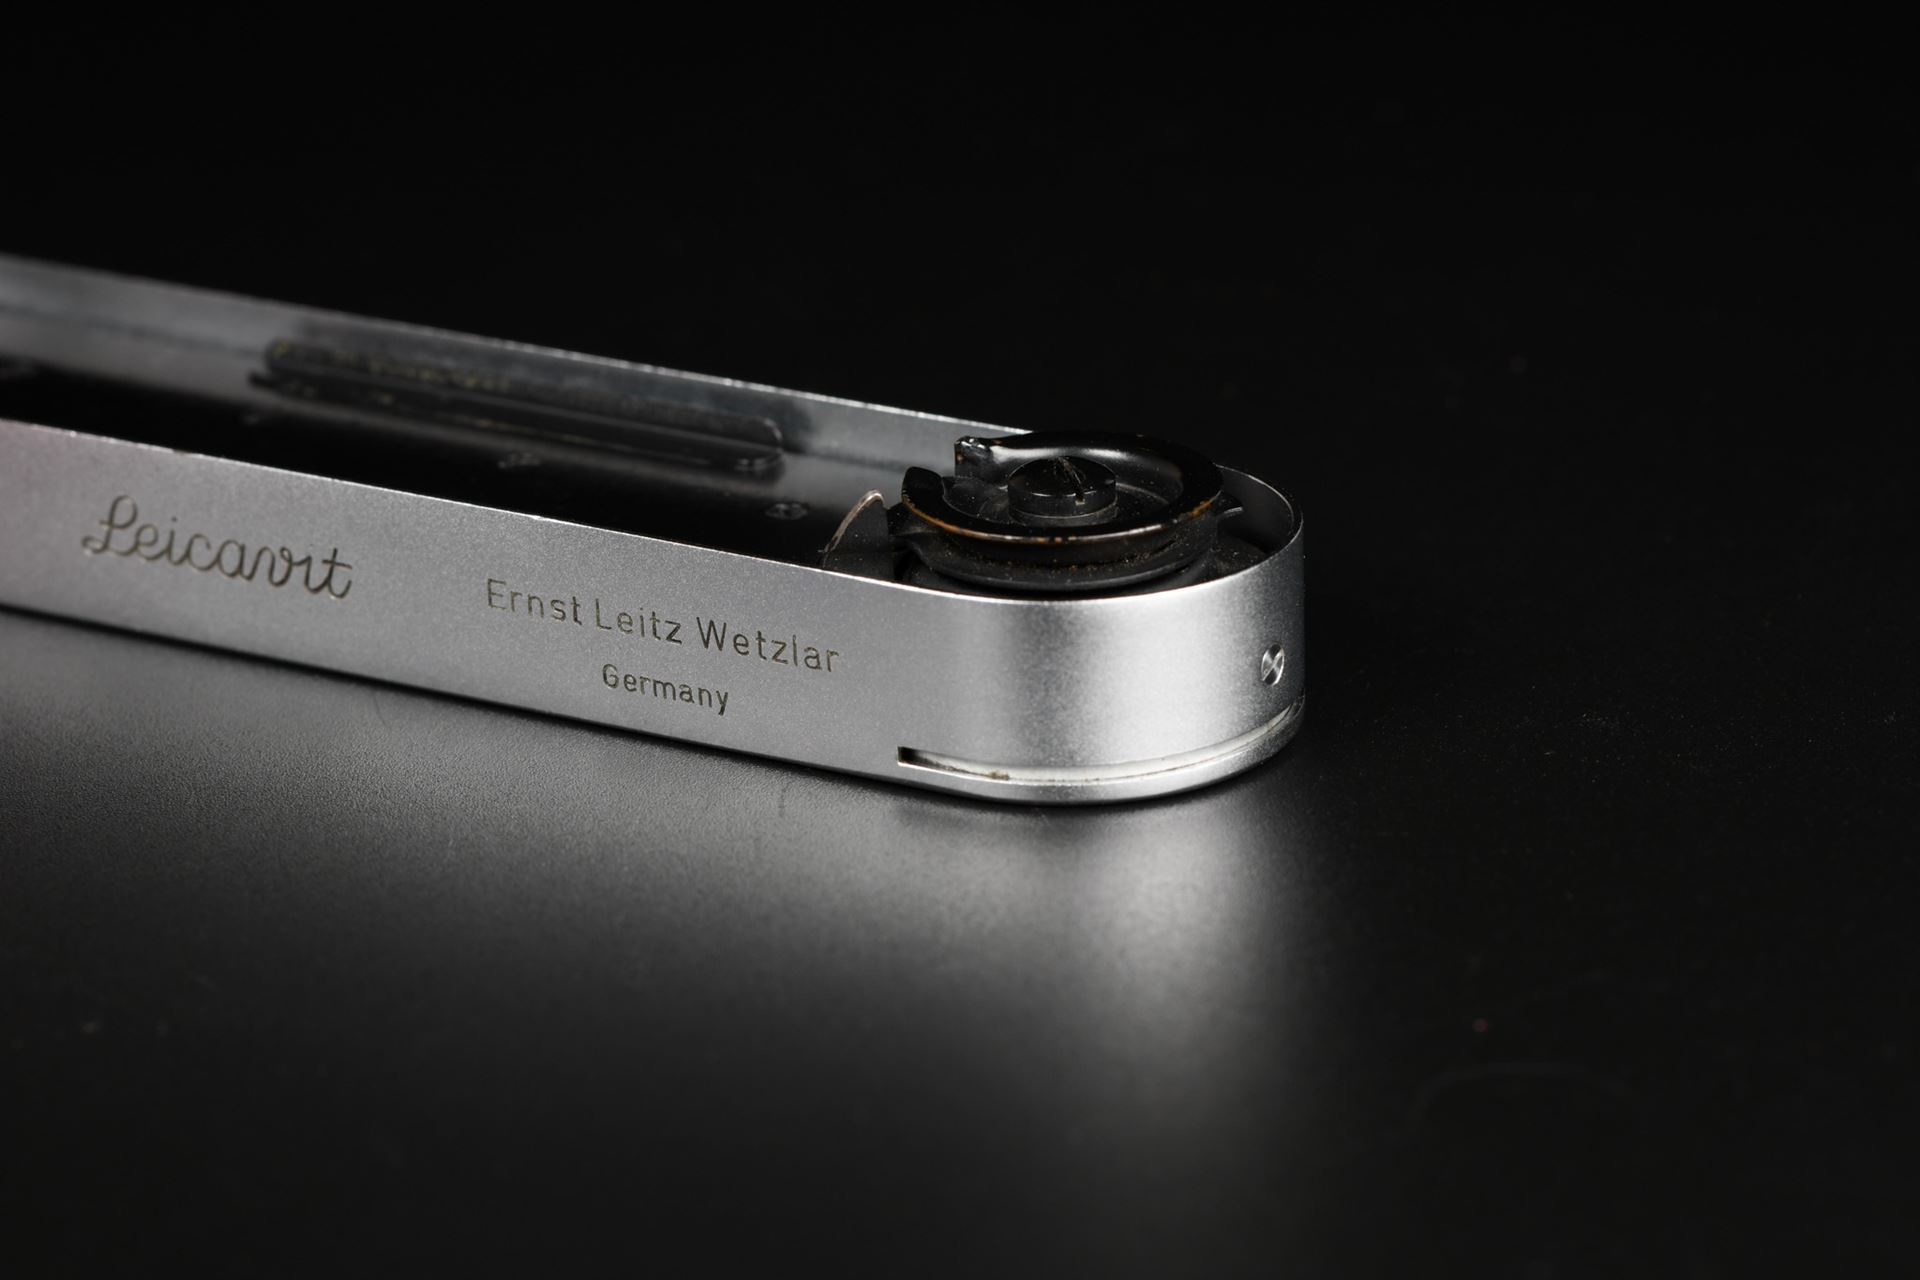 Picture of Leica SYOOM Leicavit Early for IIIf/IIIg Silver